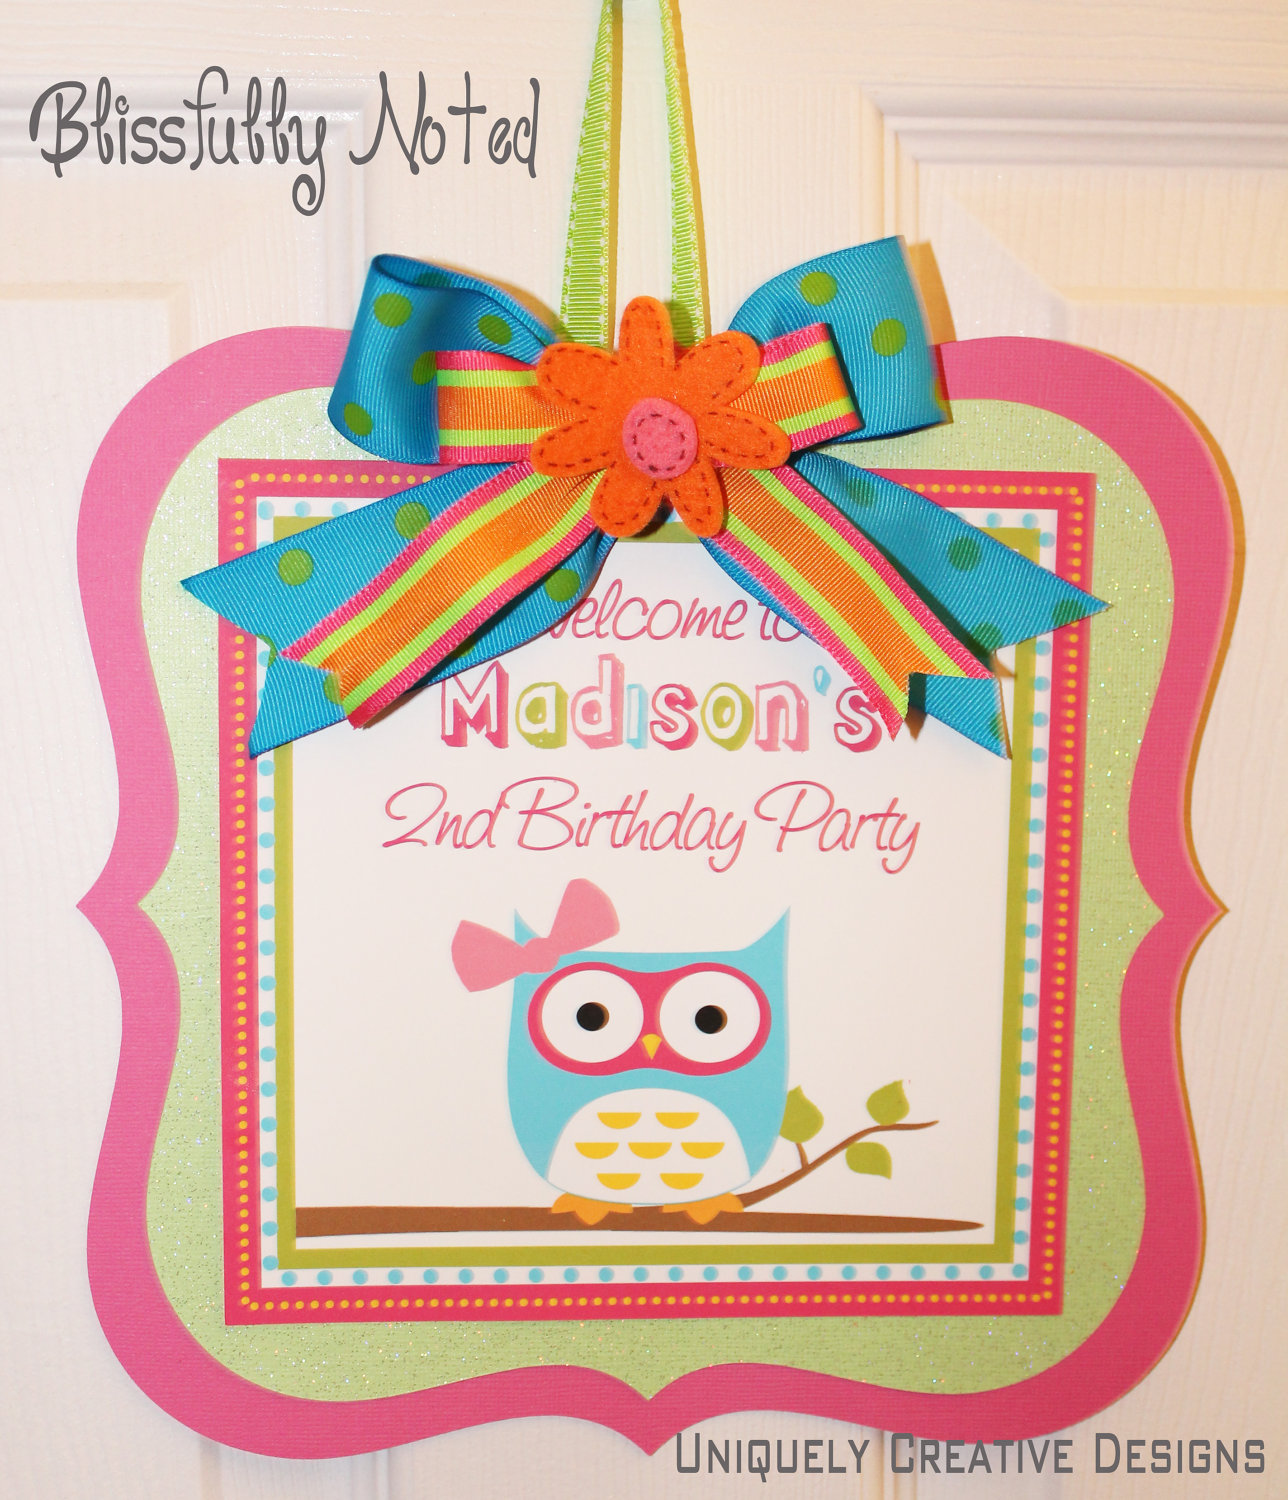 birthday door sign ; product-original-42810-7221-1342478166-87c976e916d9209f967534036c4c8ea4